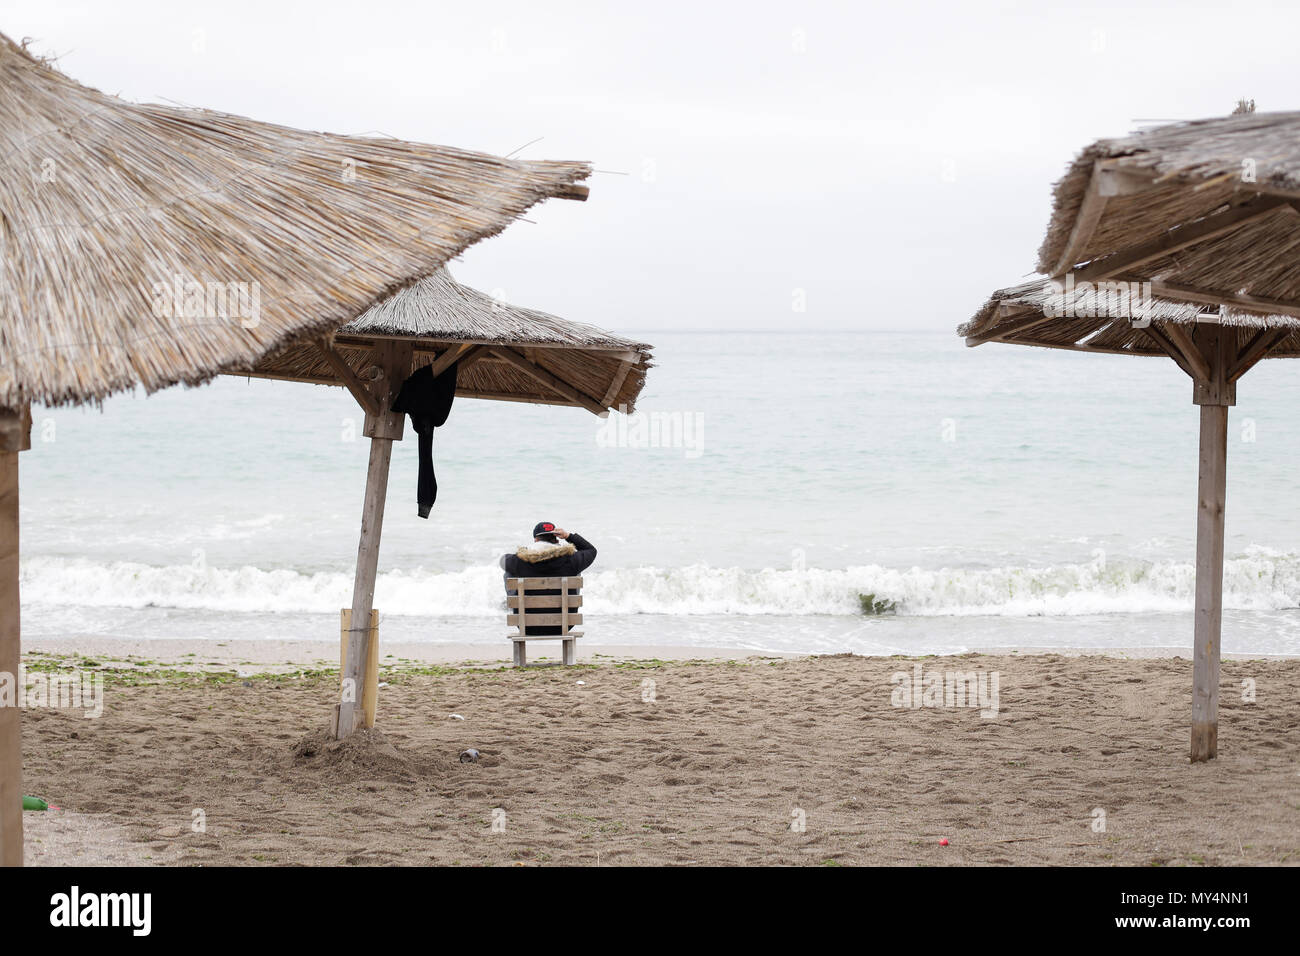 Young man relaxing on the beach after partying all night, early in the morning just before sunrise in the seaside resort of Vama Veche, Romania - Stock Image